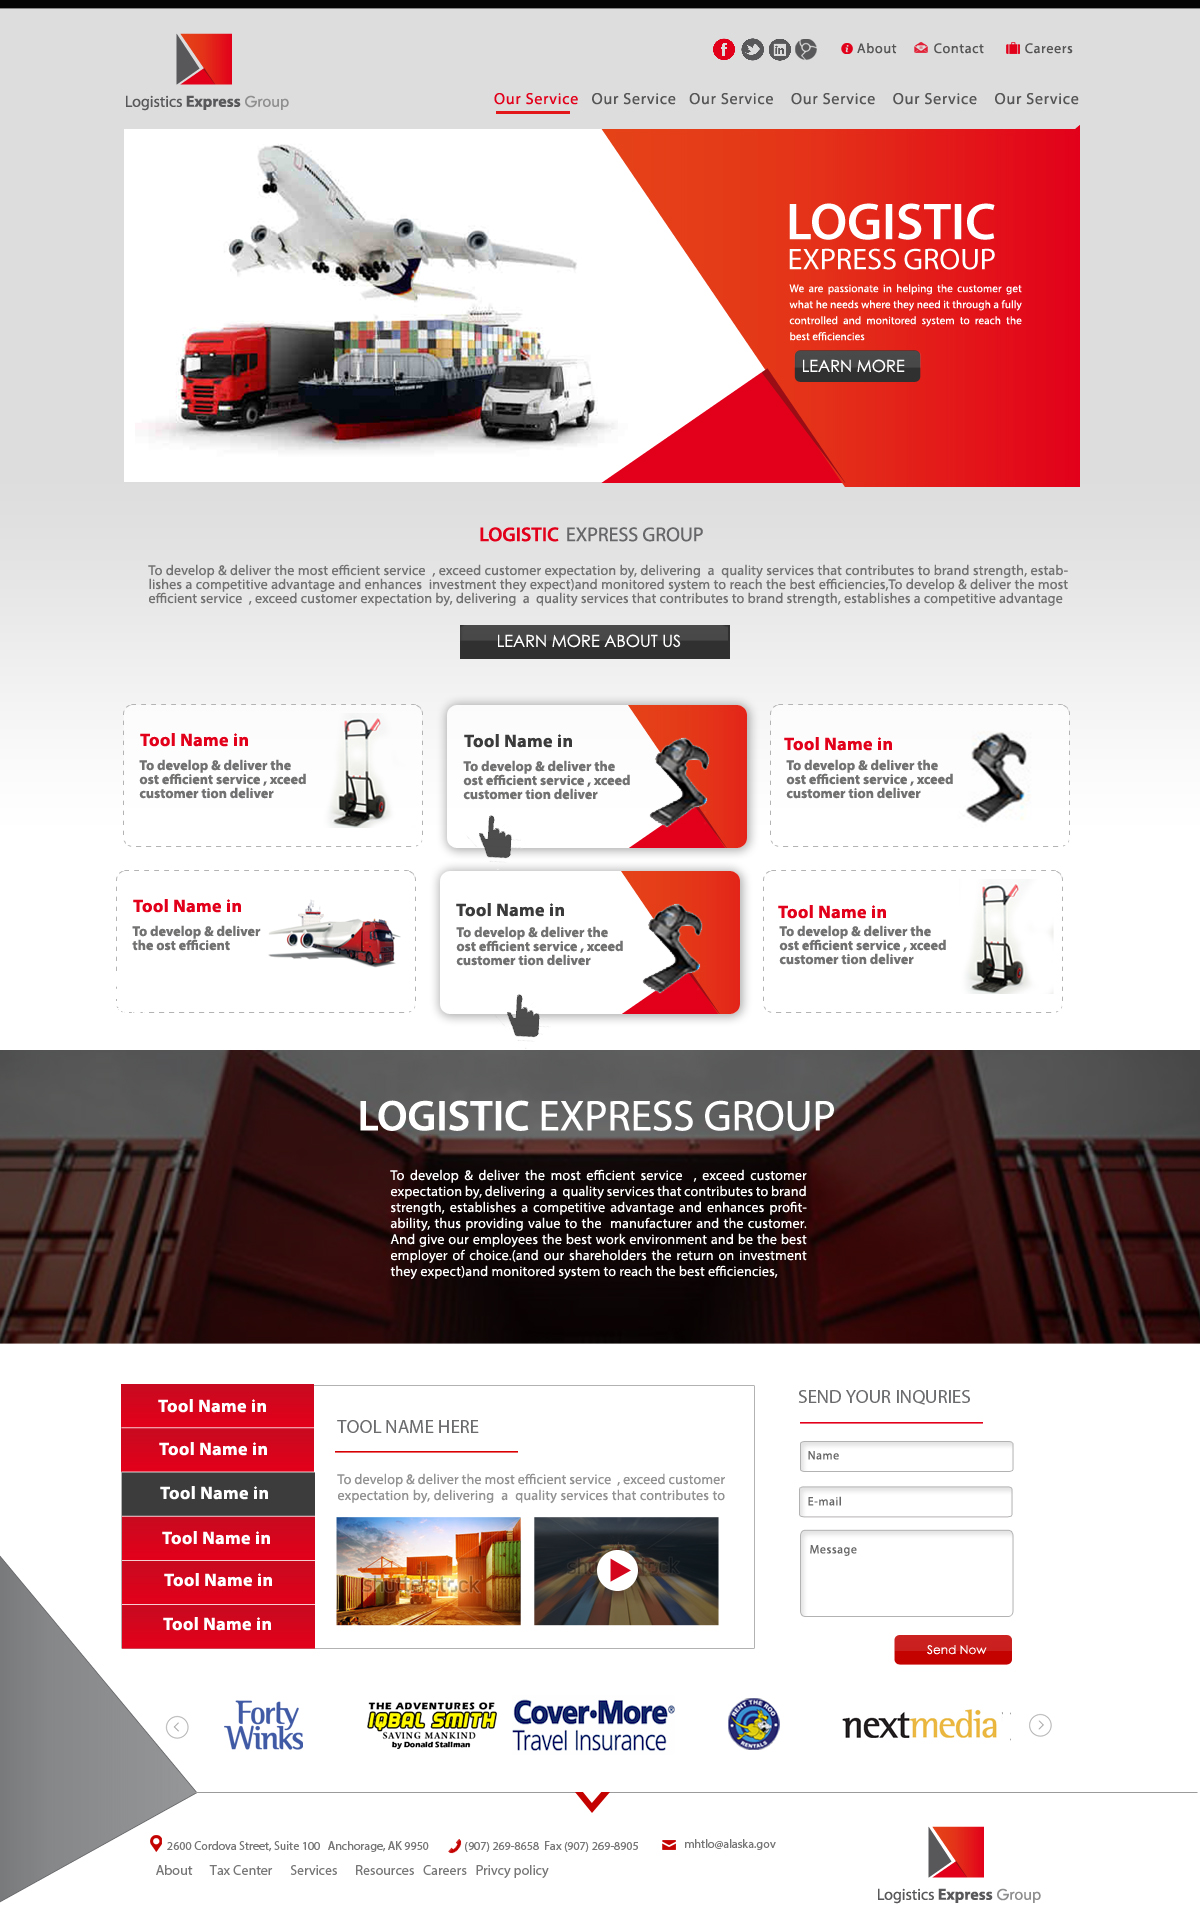 Logistics Express Group